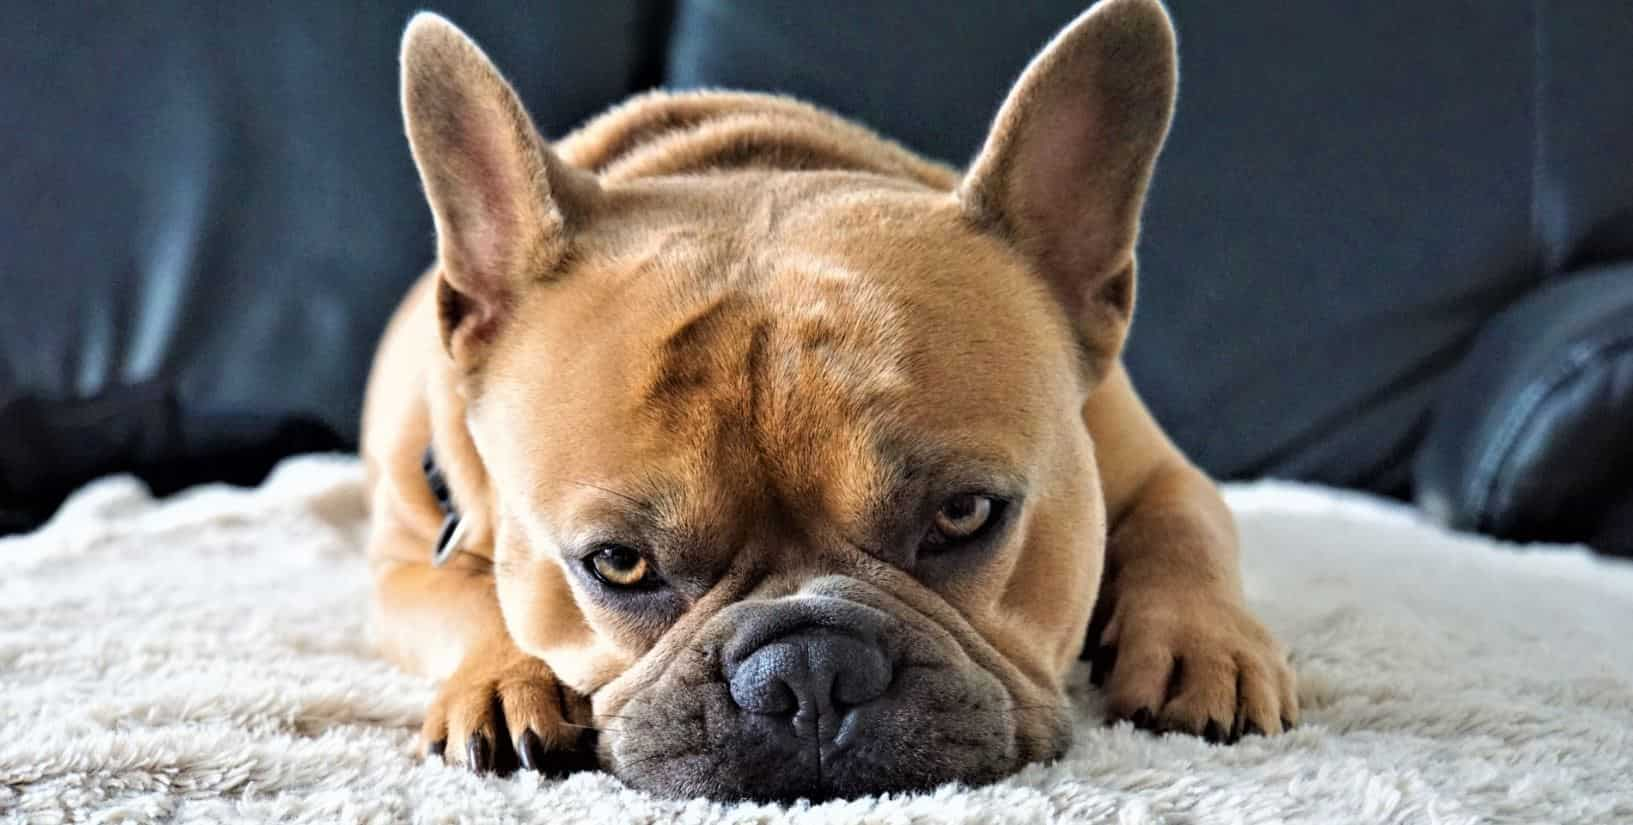 French Bulldog lies on carpet